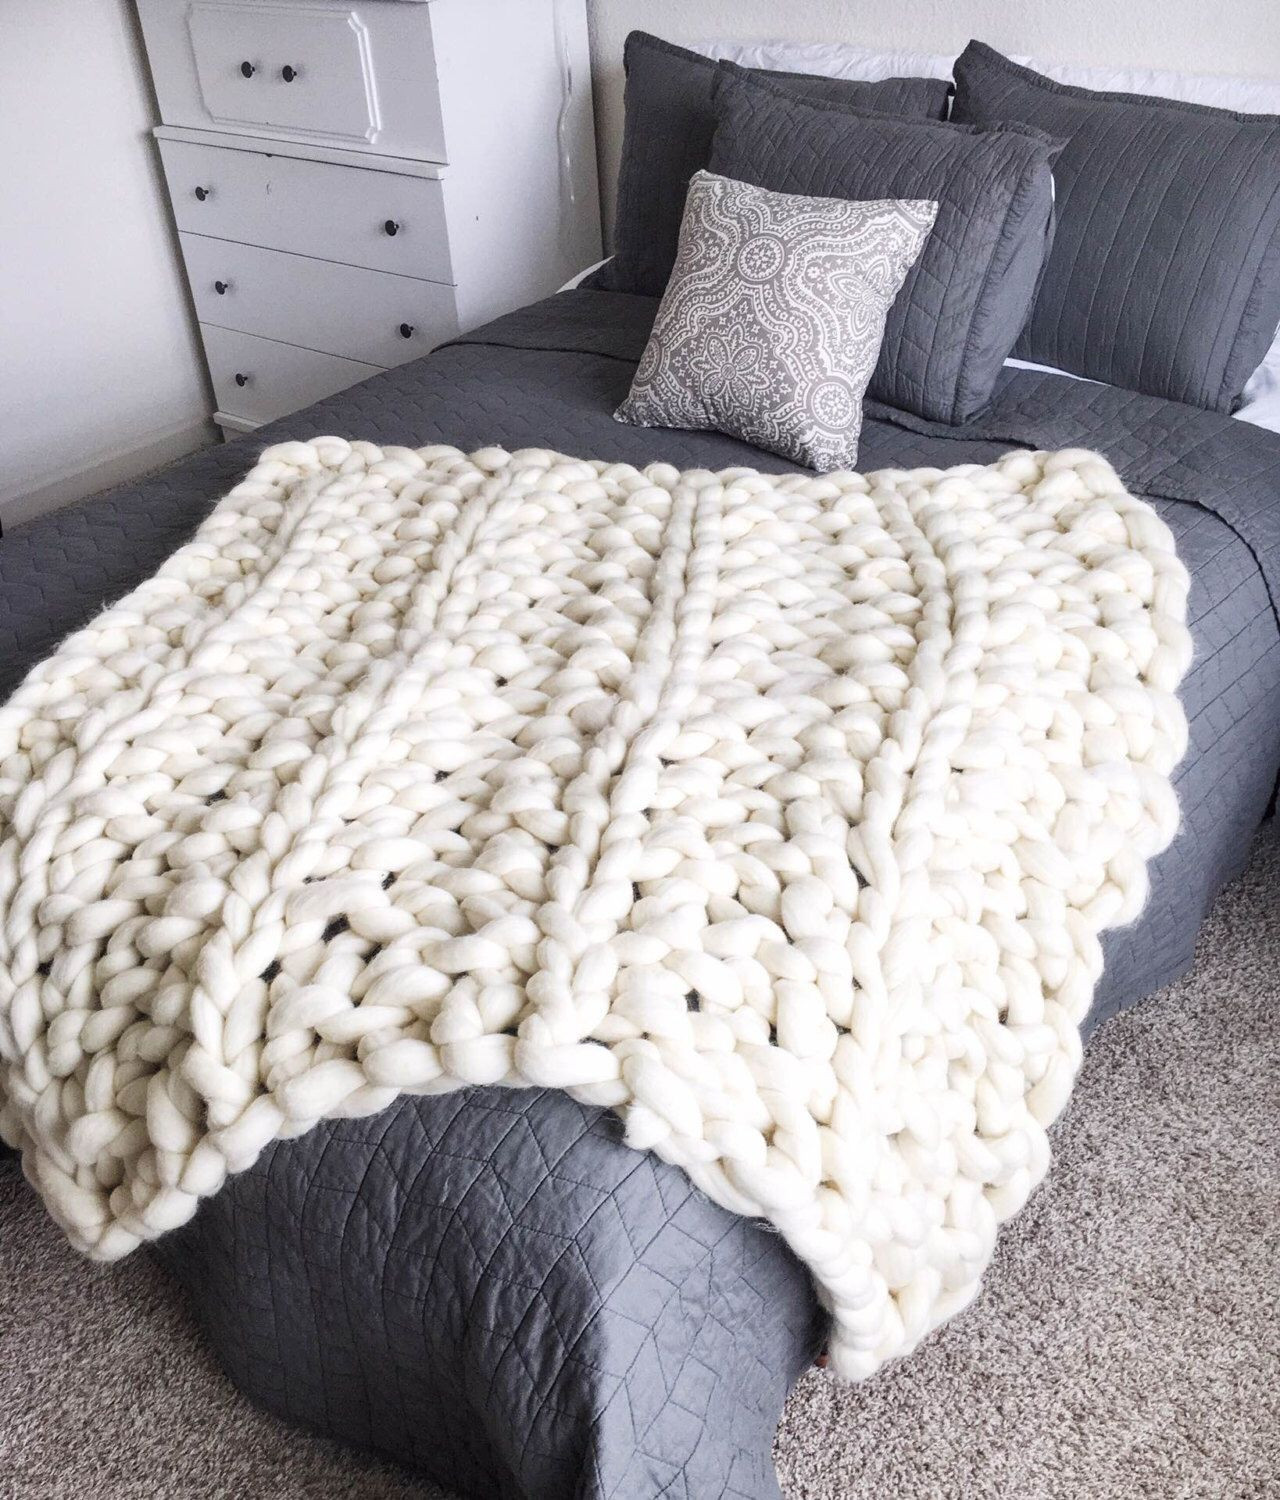 Big Knit Blanket Elegant Giant Chunky Arm Knit Blanket Of Delightful 46 Pictures Big Knit Blanket